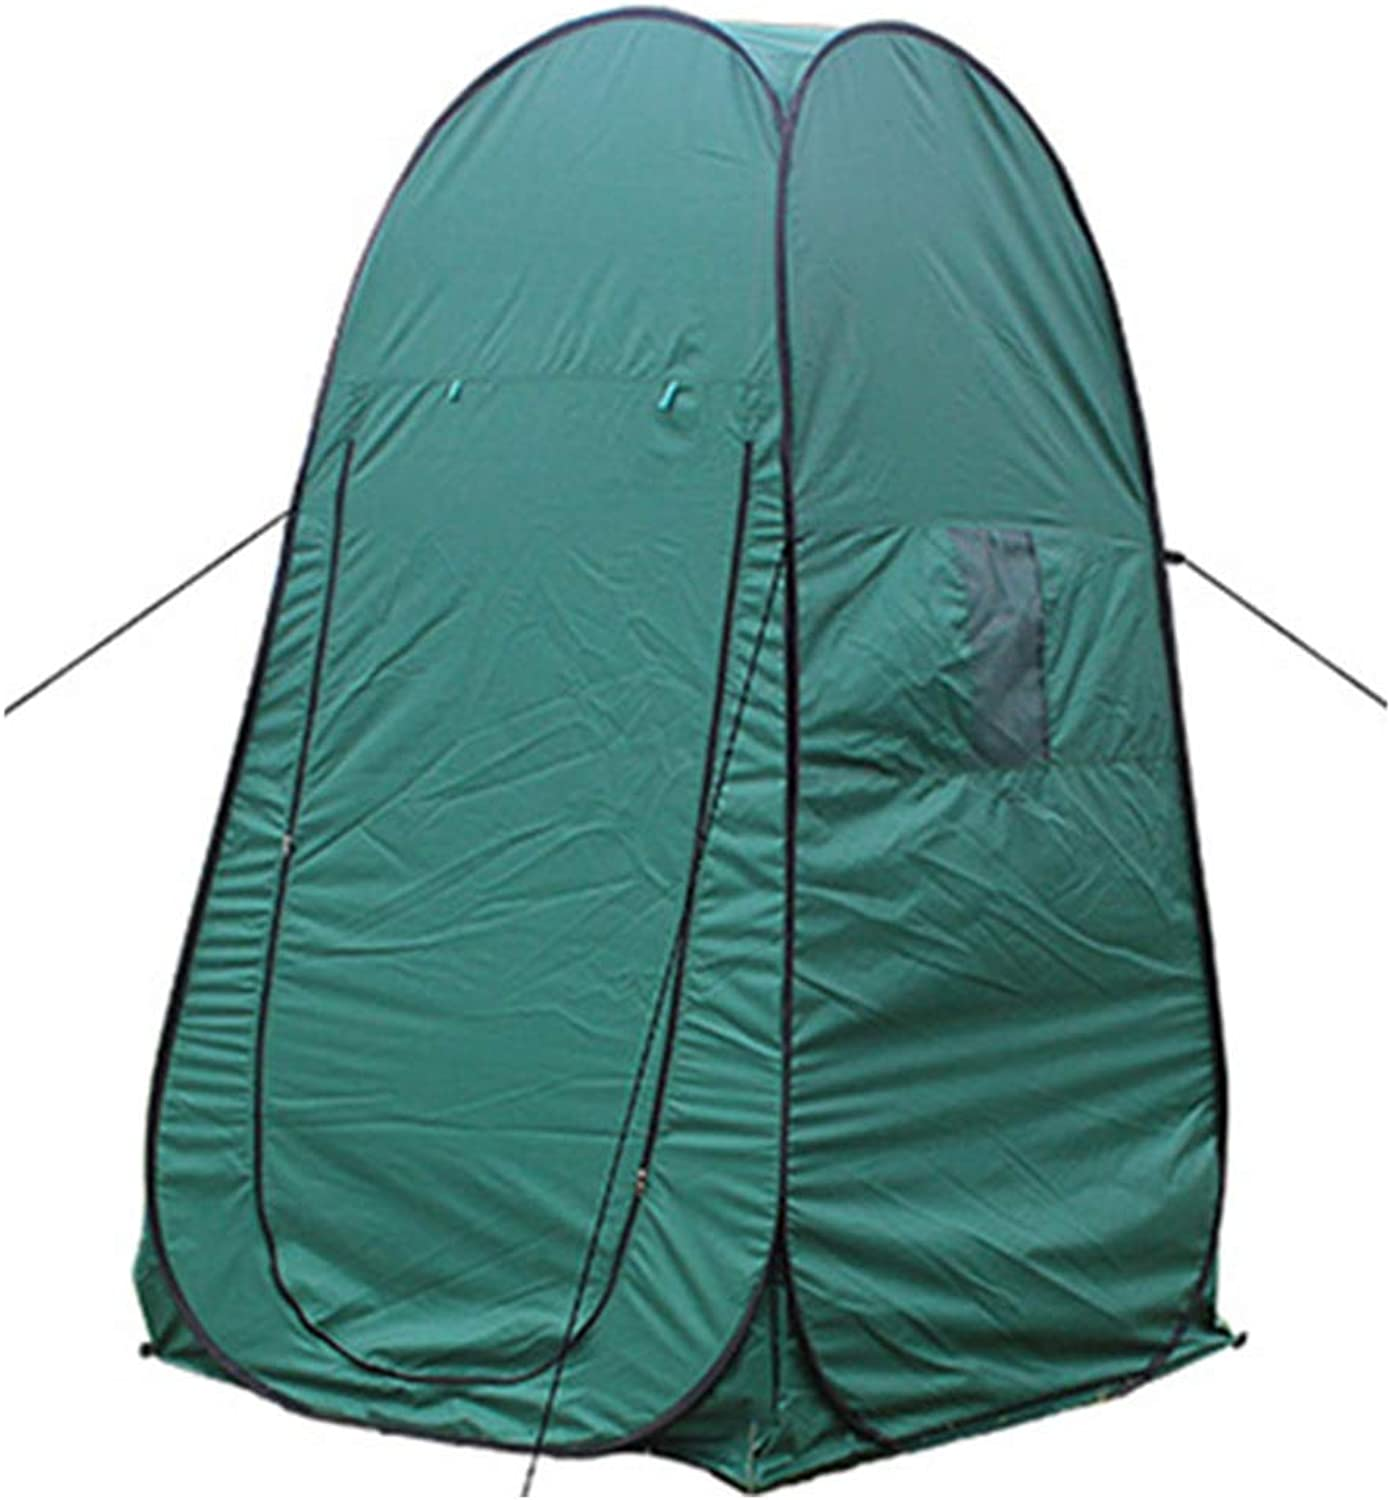 Privacy Shelter Camping Shower Waterproof SunProof Compact Dressing Changing Room Shower for Hiking